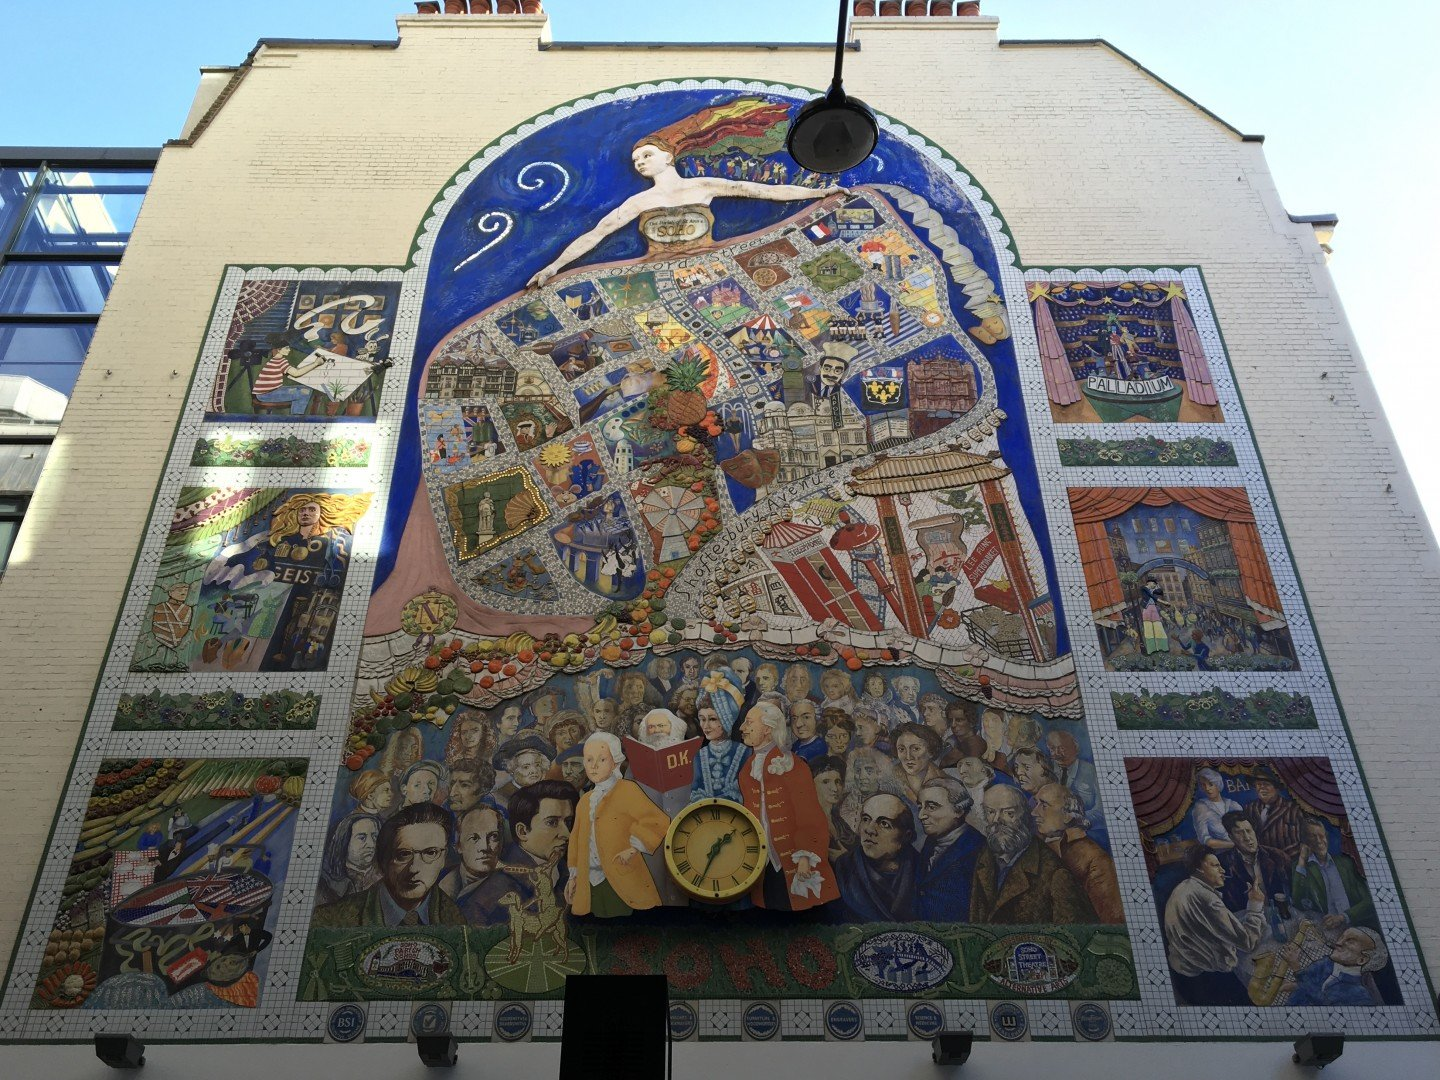 Best Historic London Murals - Spirit of Soho